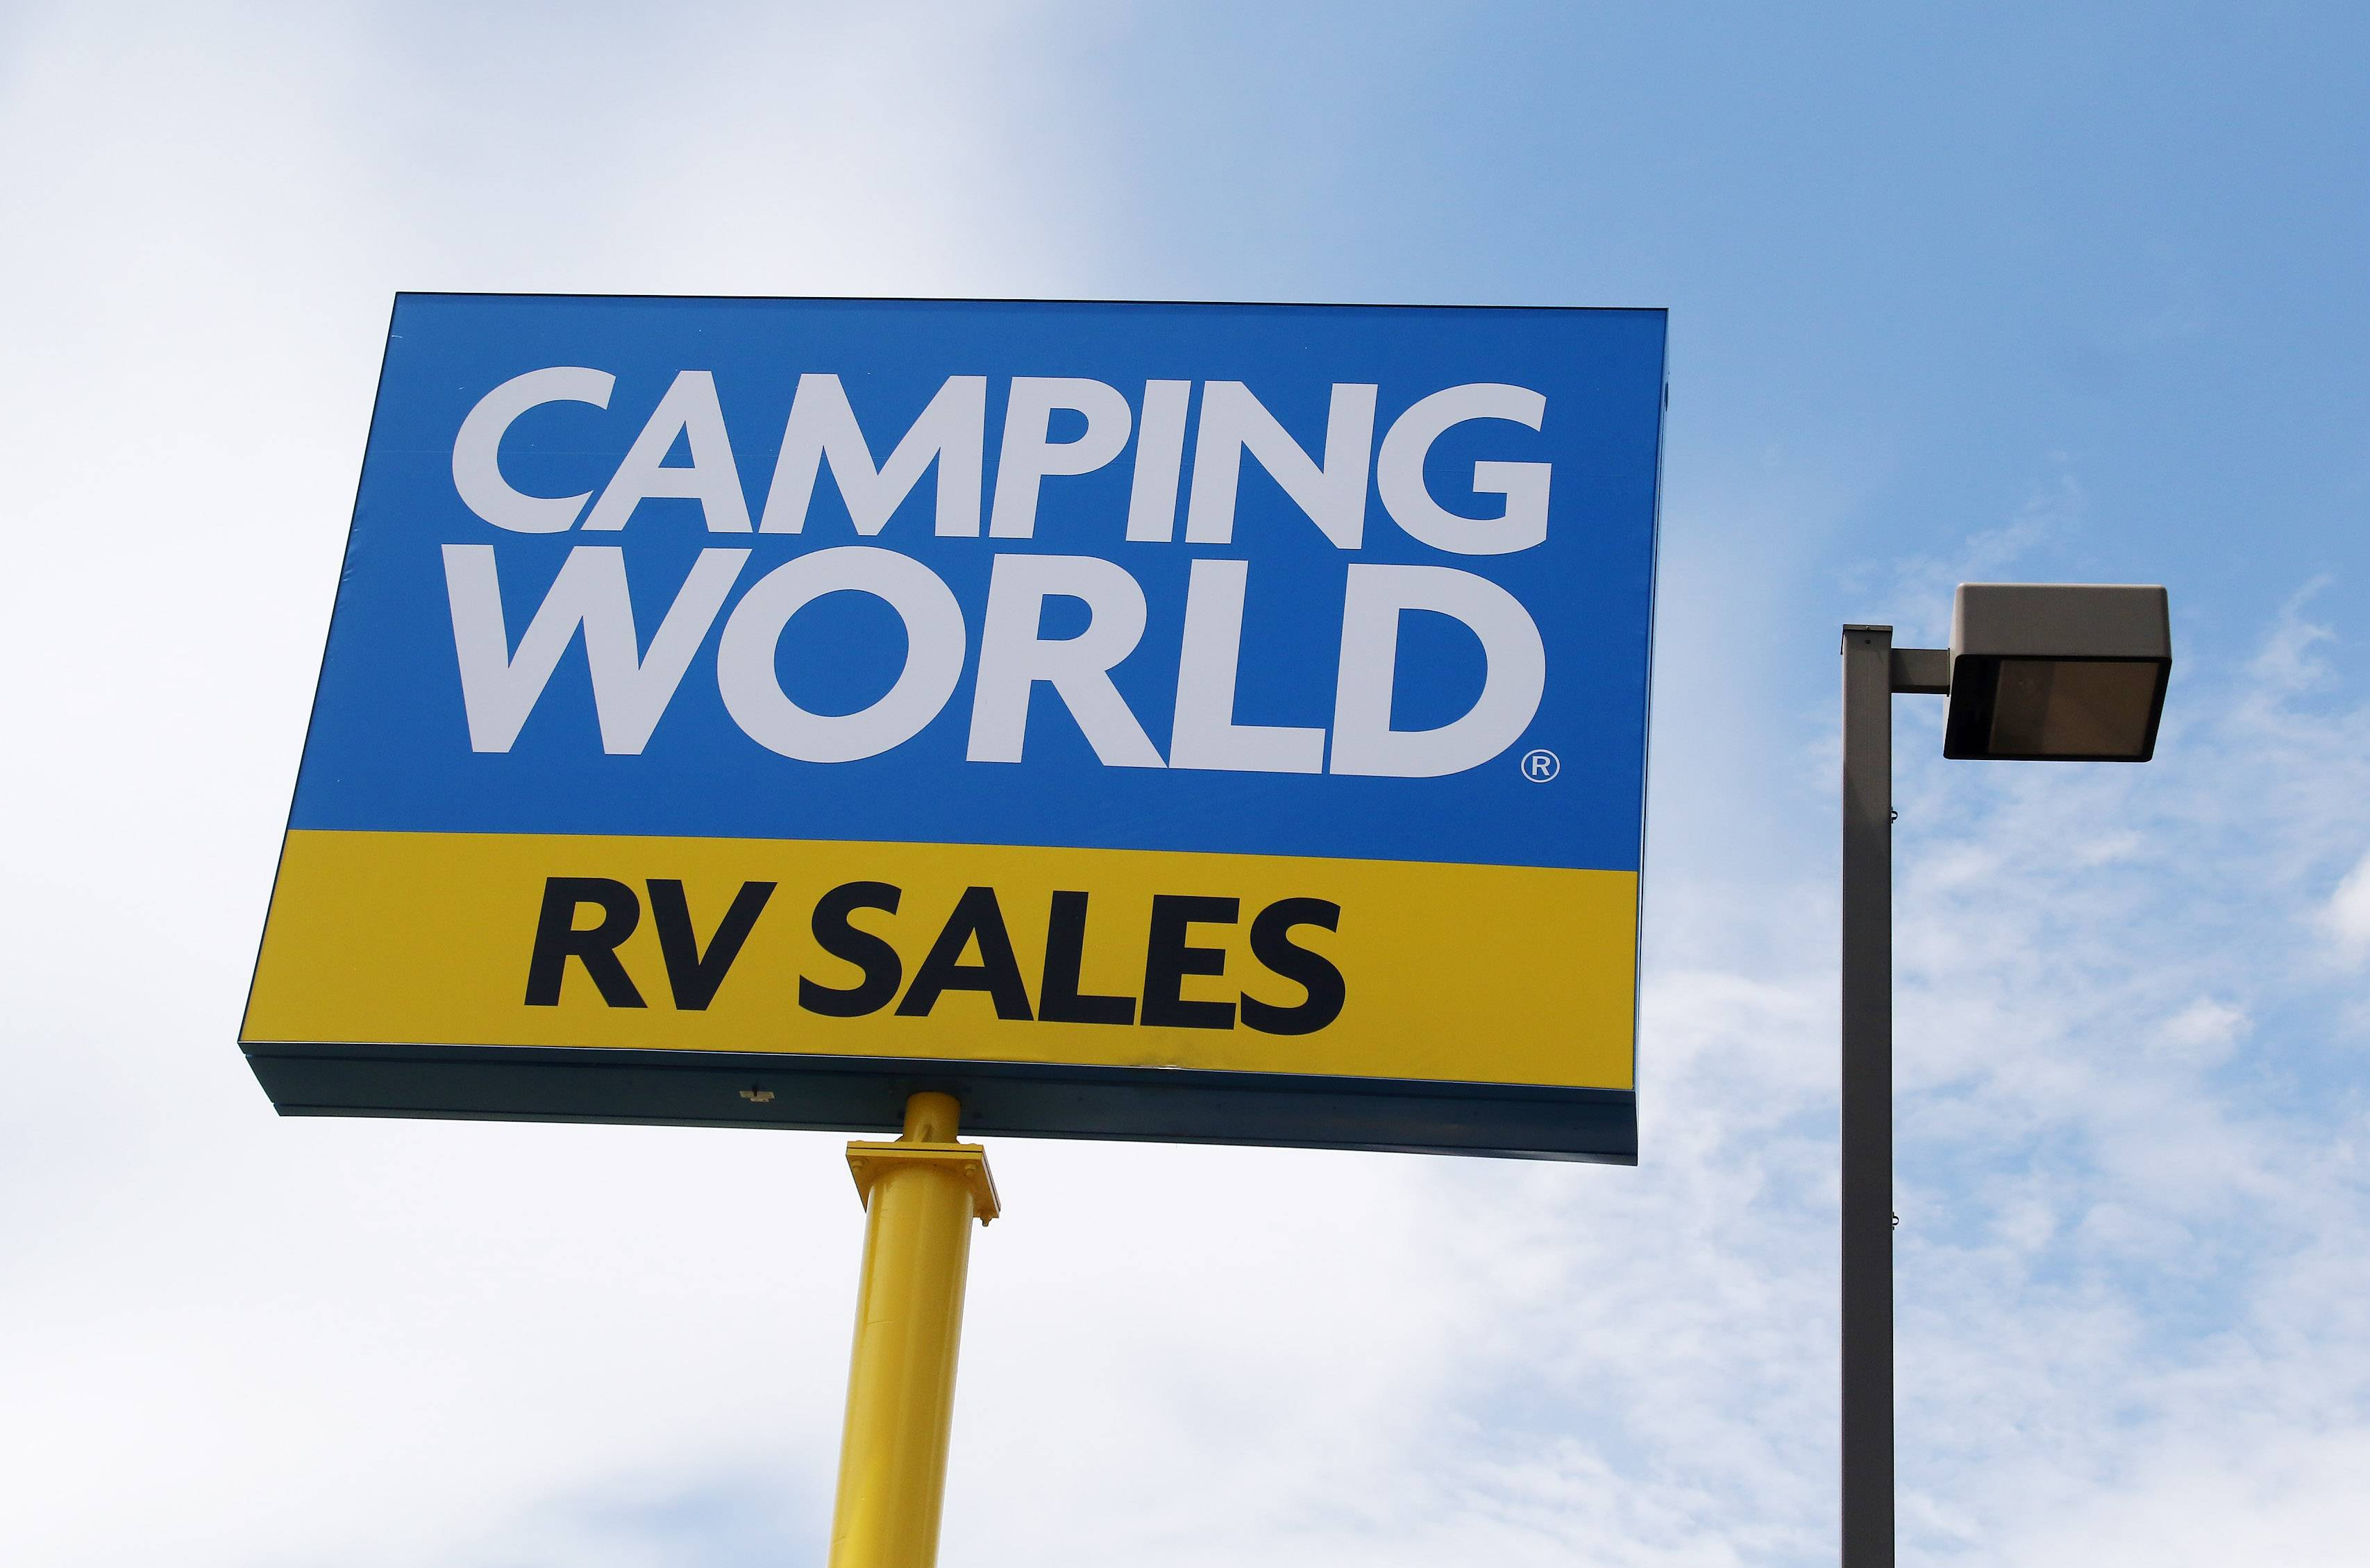 CEO Marcus Lemonis turned Camping World into a multibillion-dollar RV company nationwide.